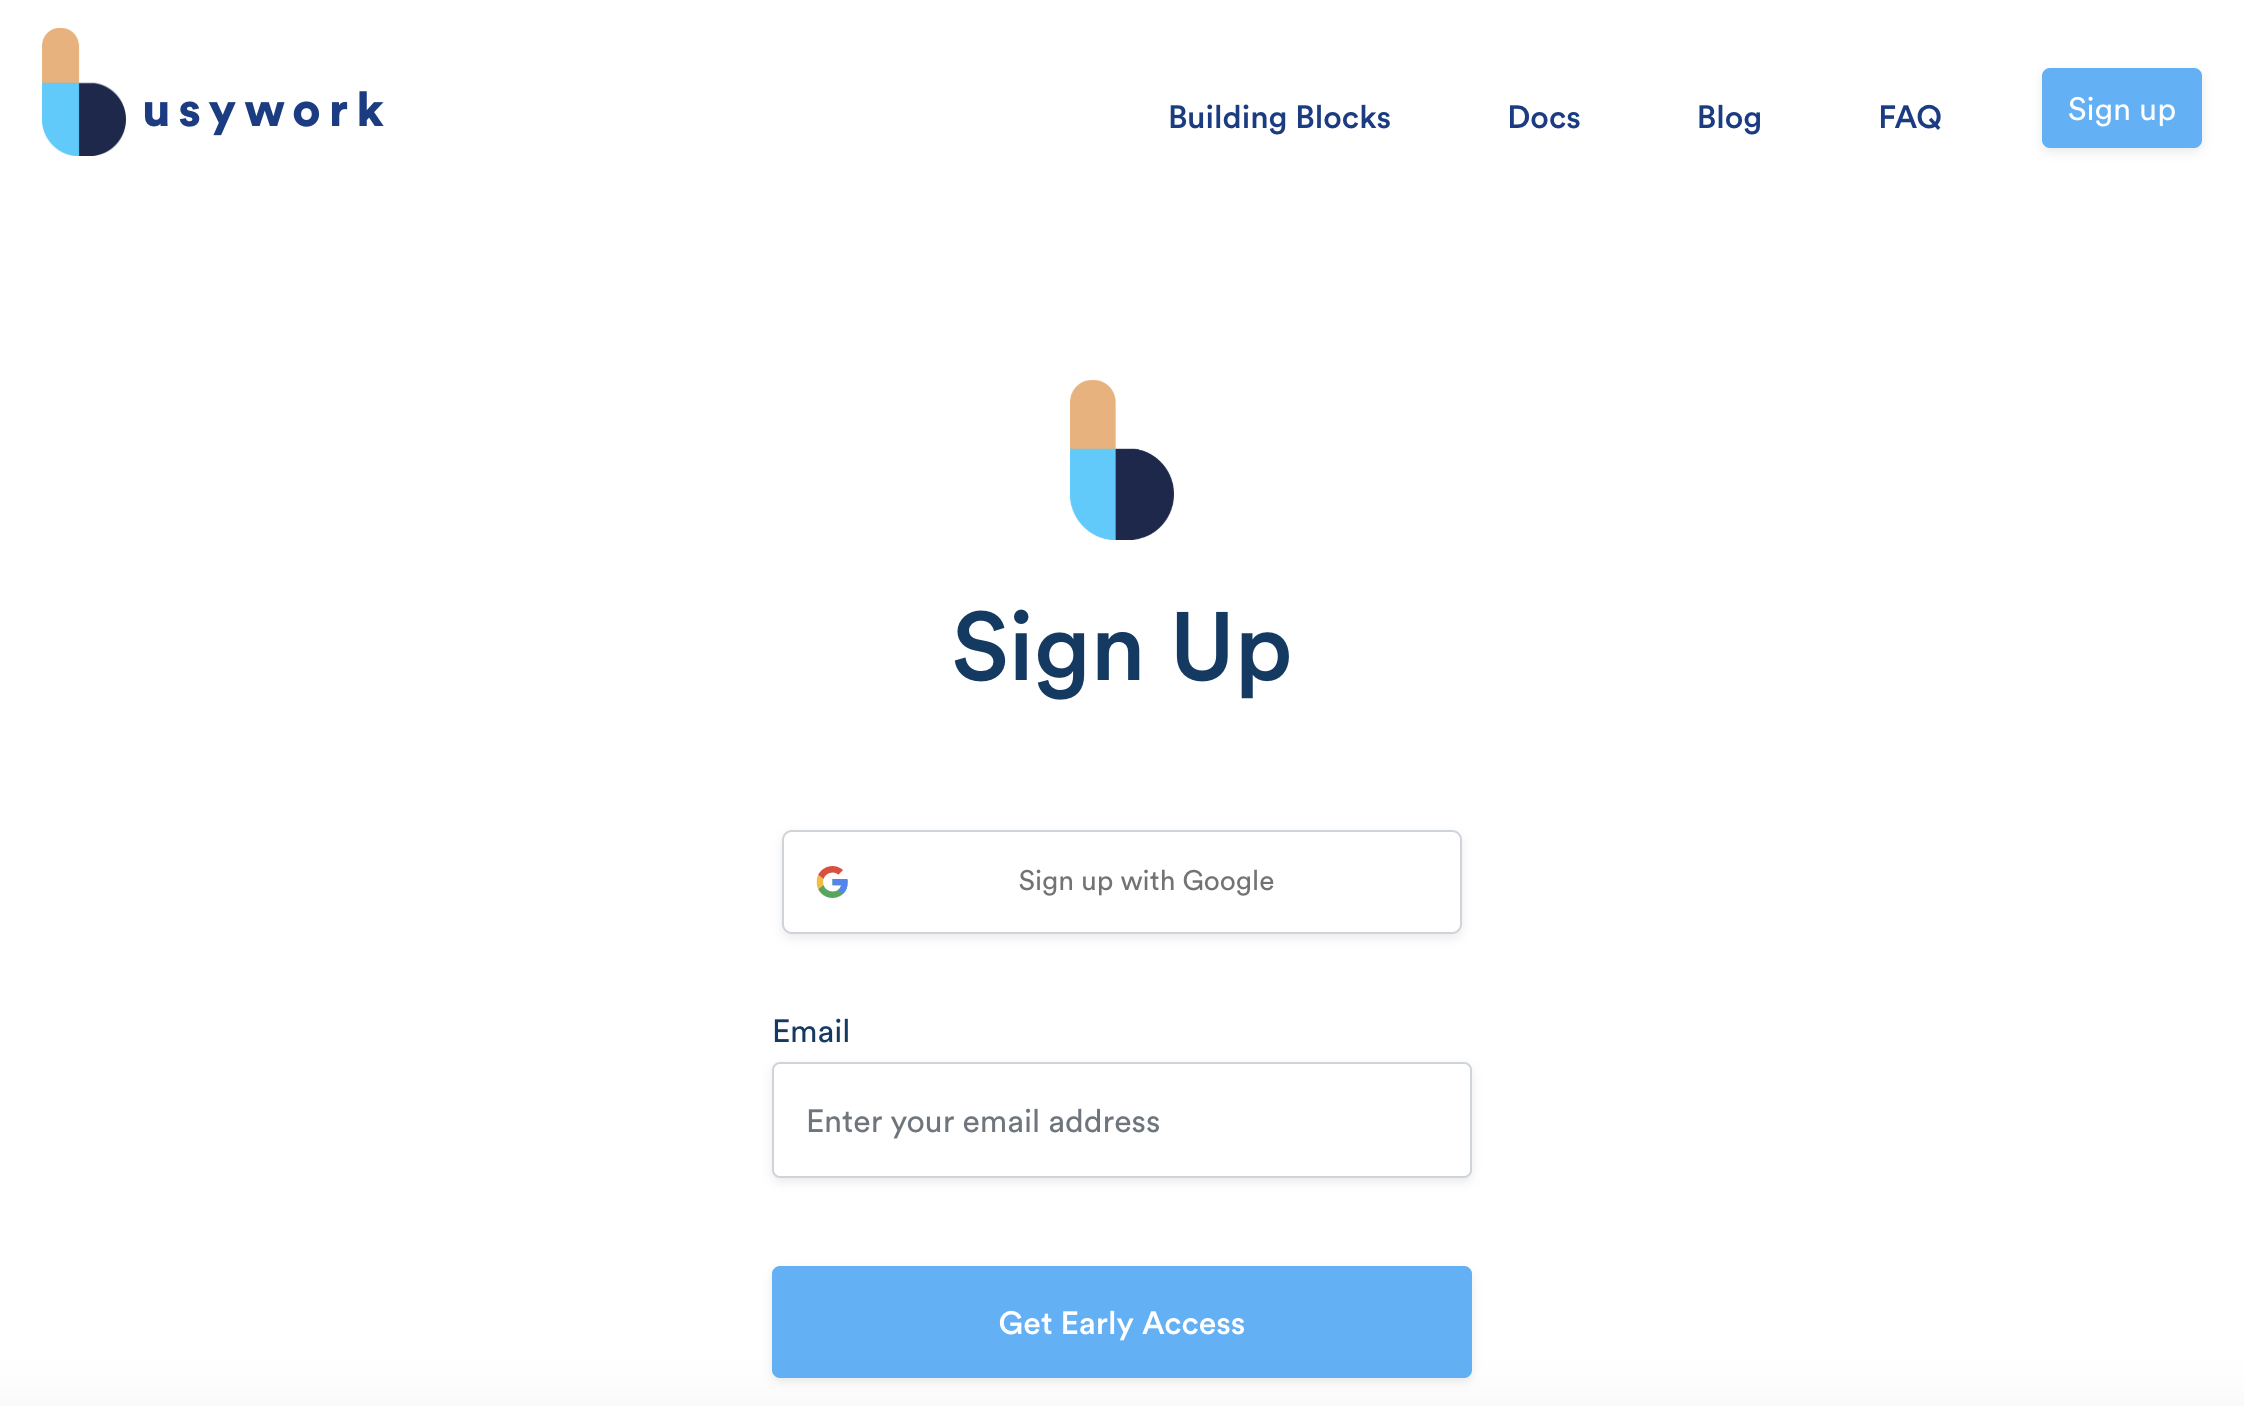 Sign Up with Busywork